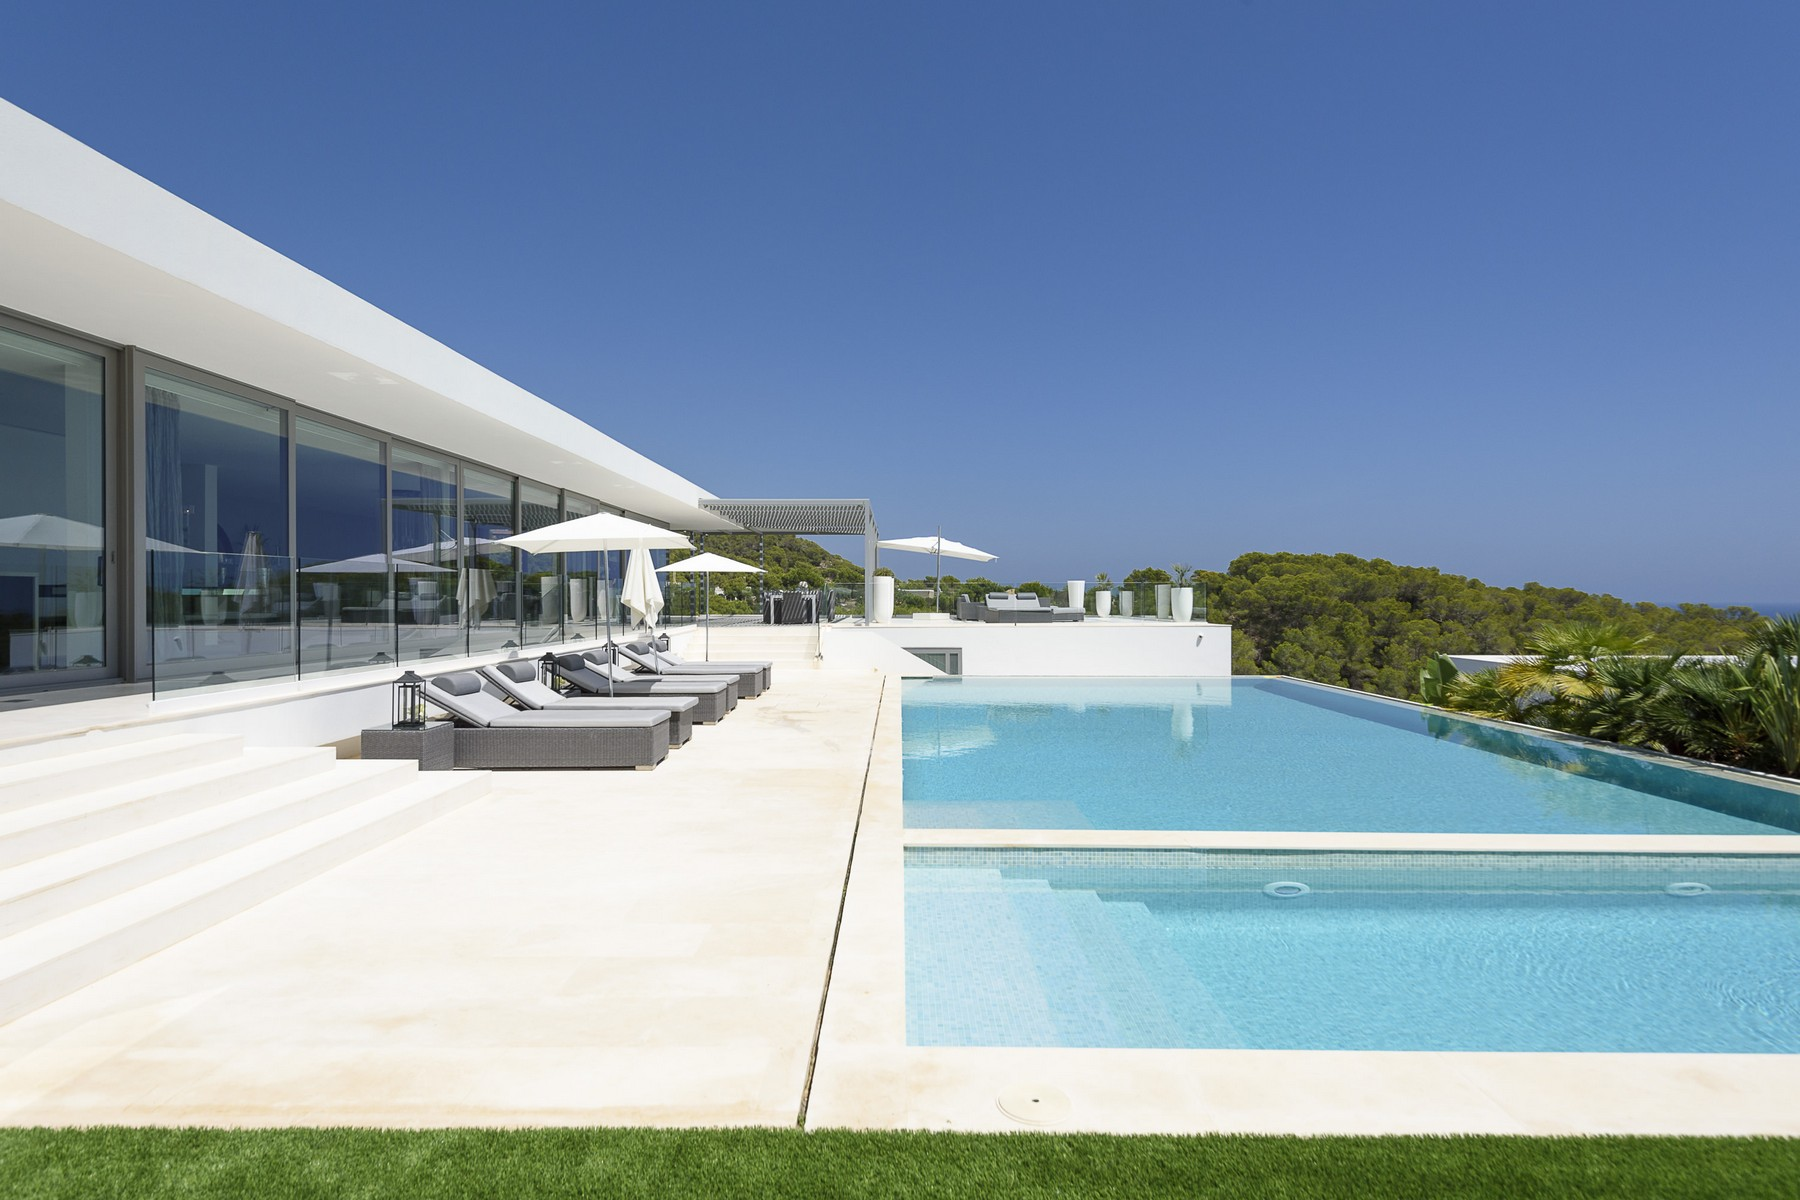 Casa Unifamiliar por un Venta en Stunning Villa With Sea Views In Cap Martinet Ibiza, Ibiza, 07819 España